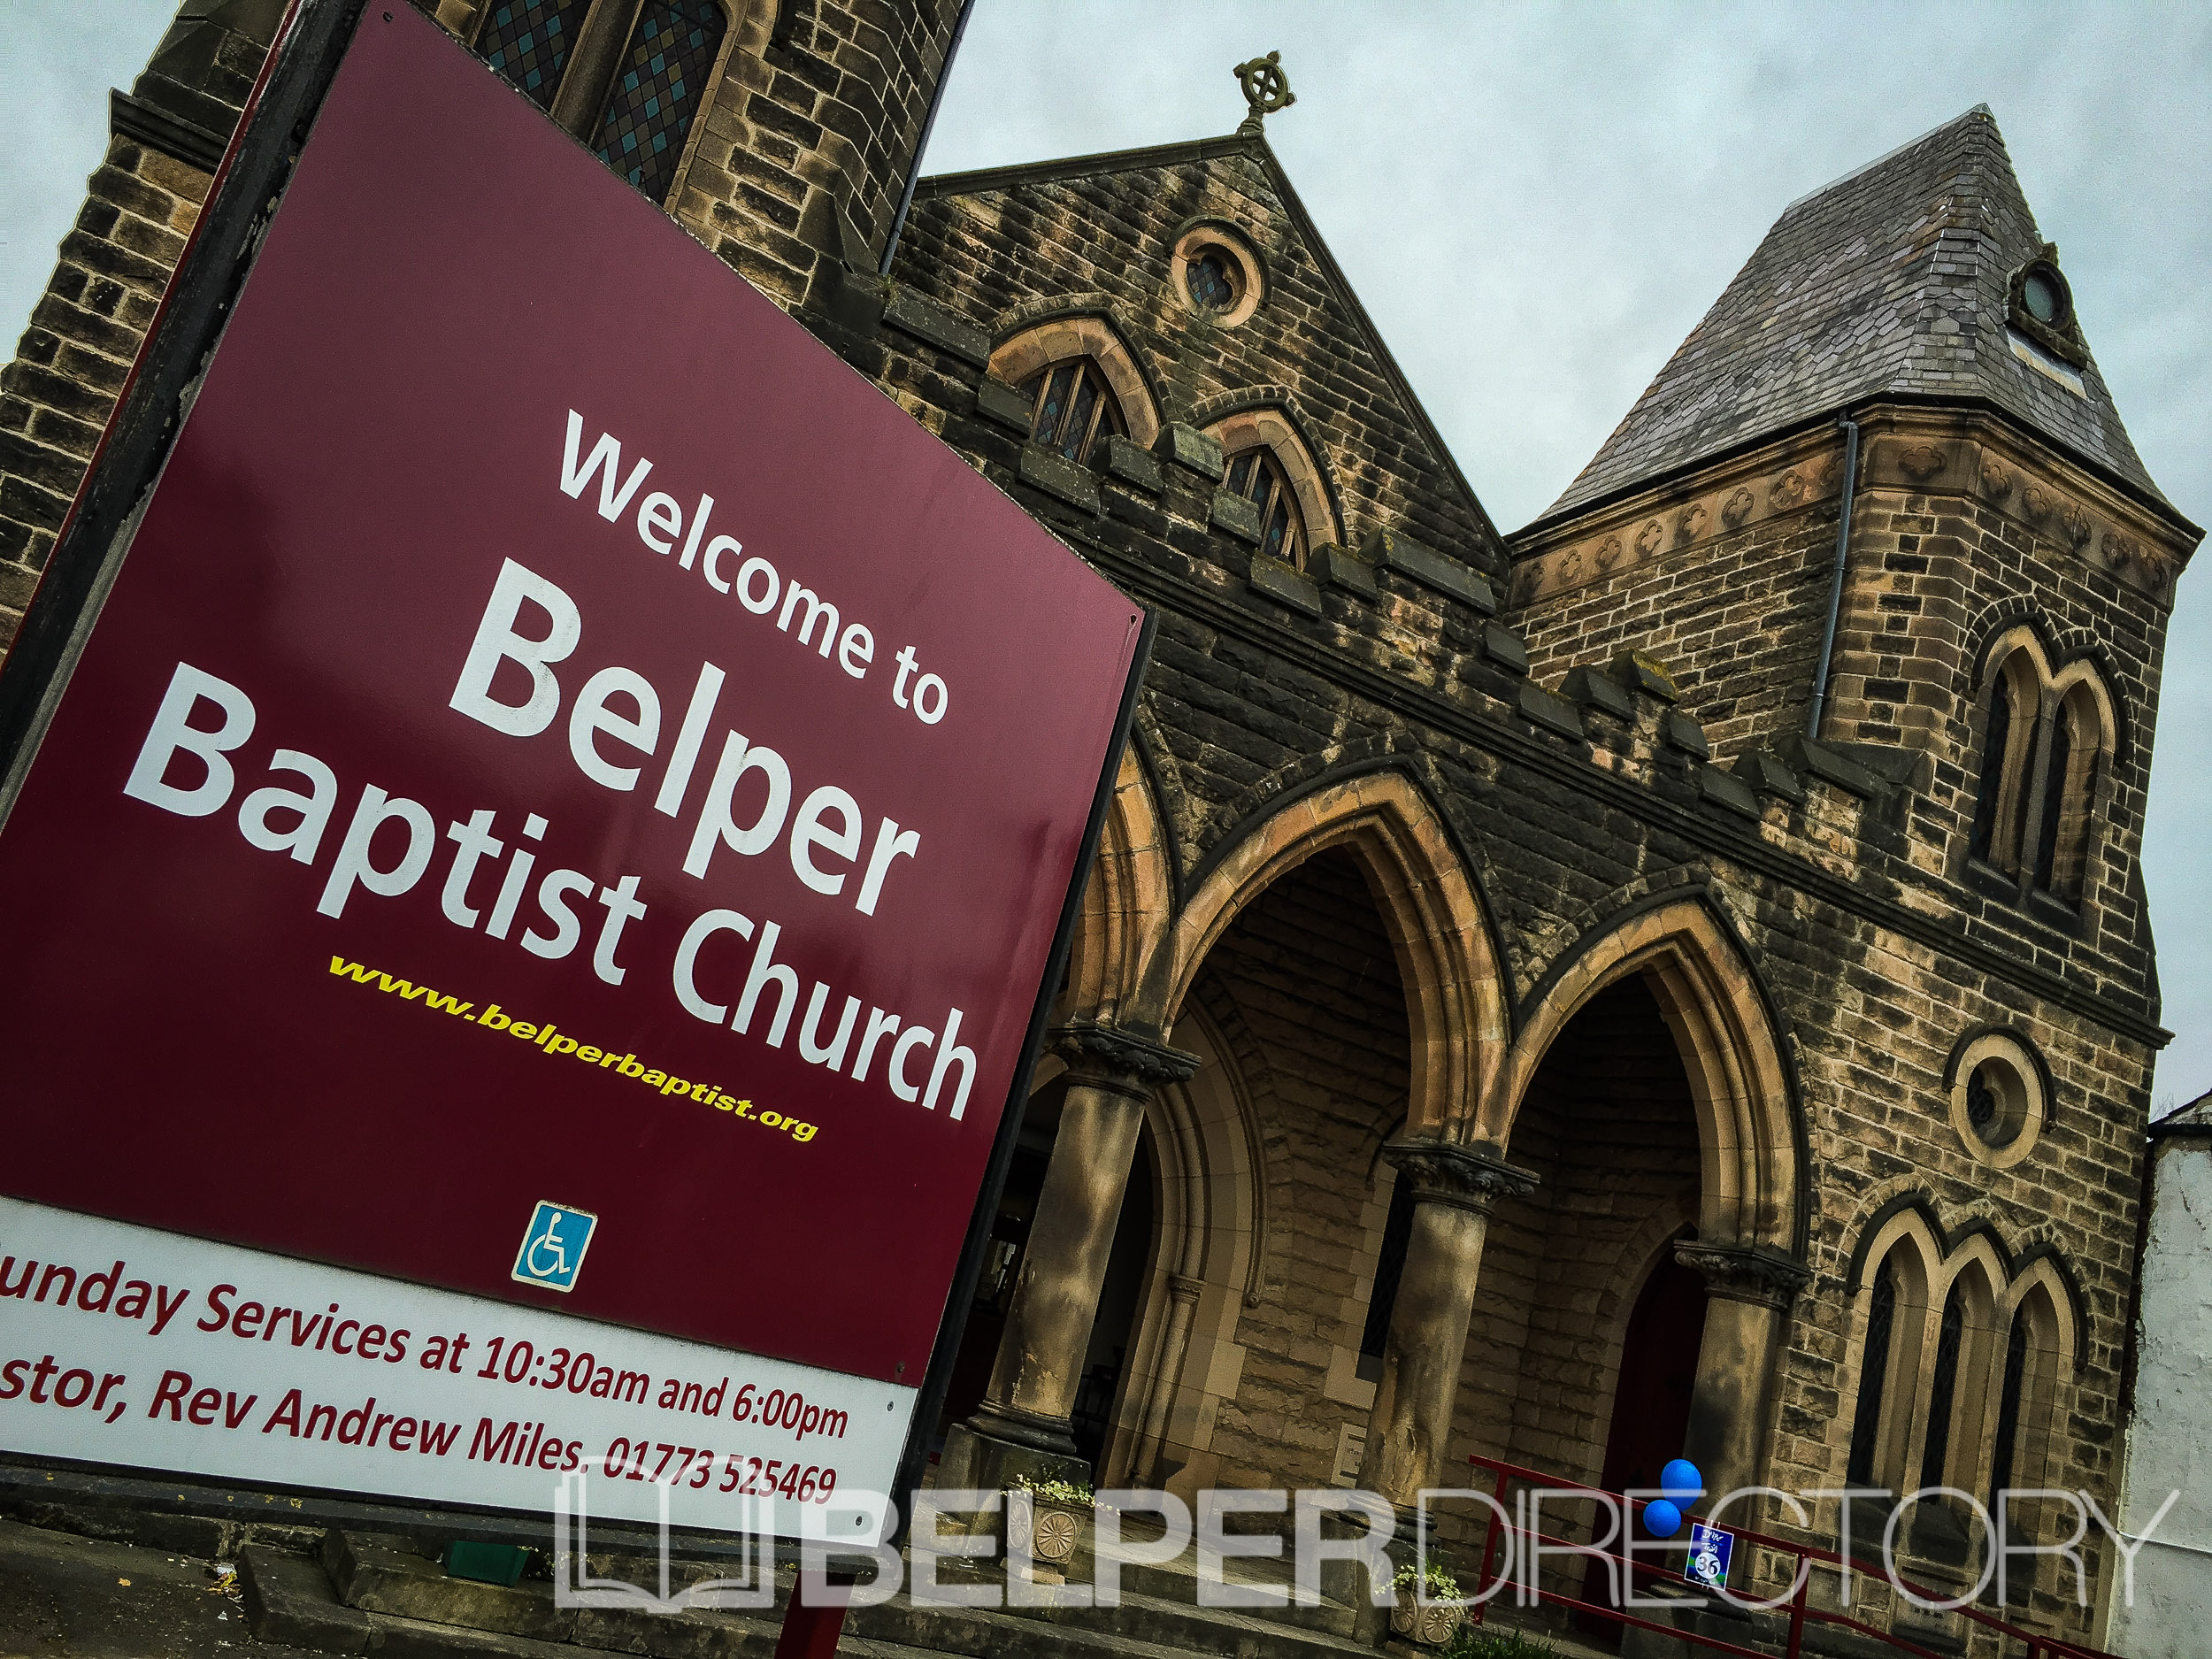 Belper Baptist Church on Inter Search